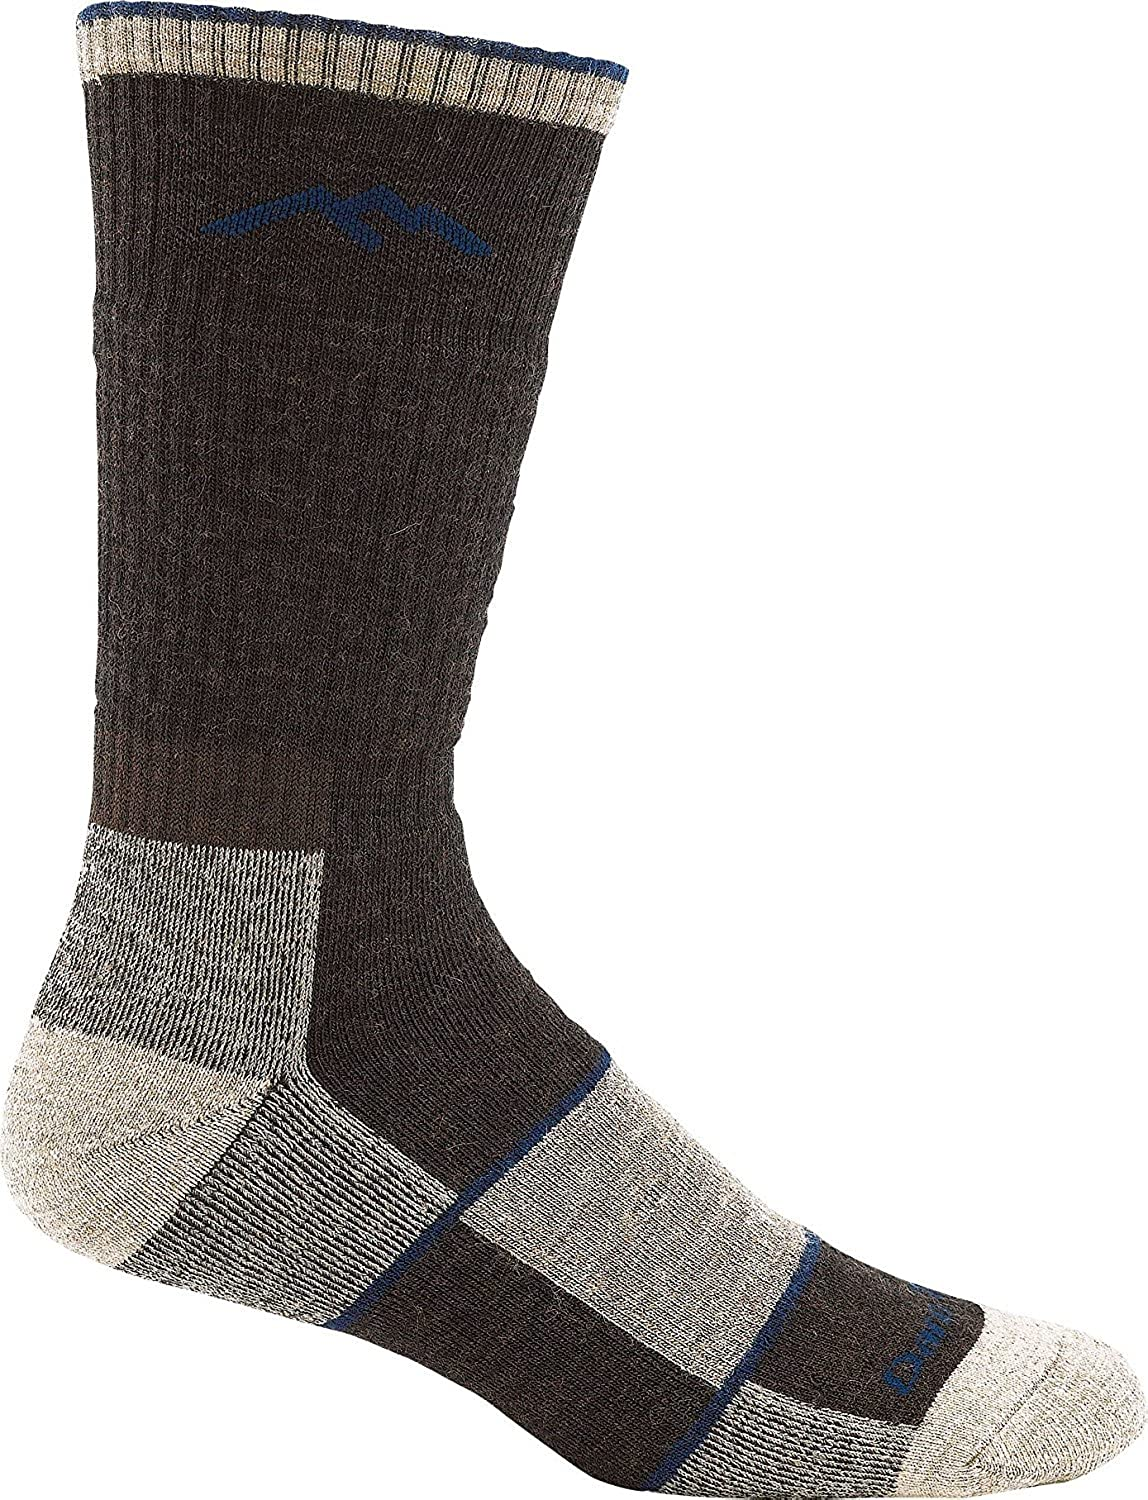 Darn Tough Men's Hiker Book Sock Full Cushion (Style 1405) Merino Wool, Chocolate (X-Large 12.5-14.5) - 6 Pack